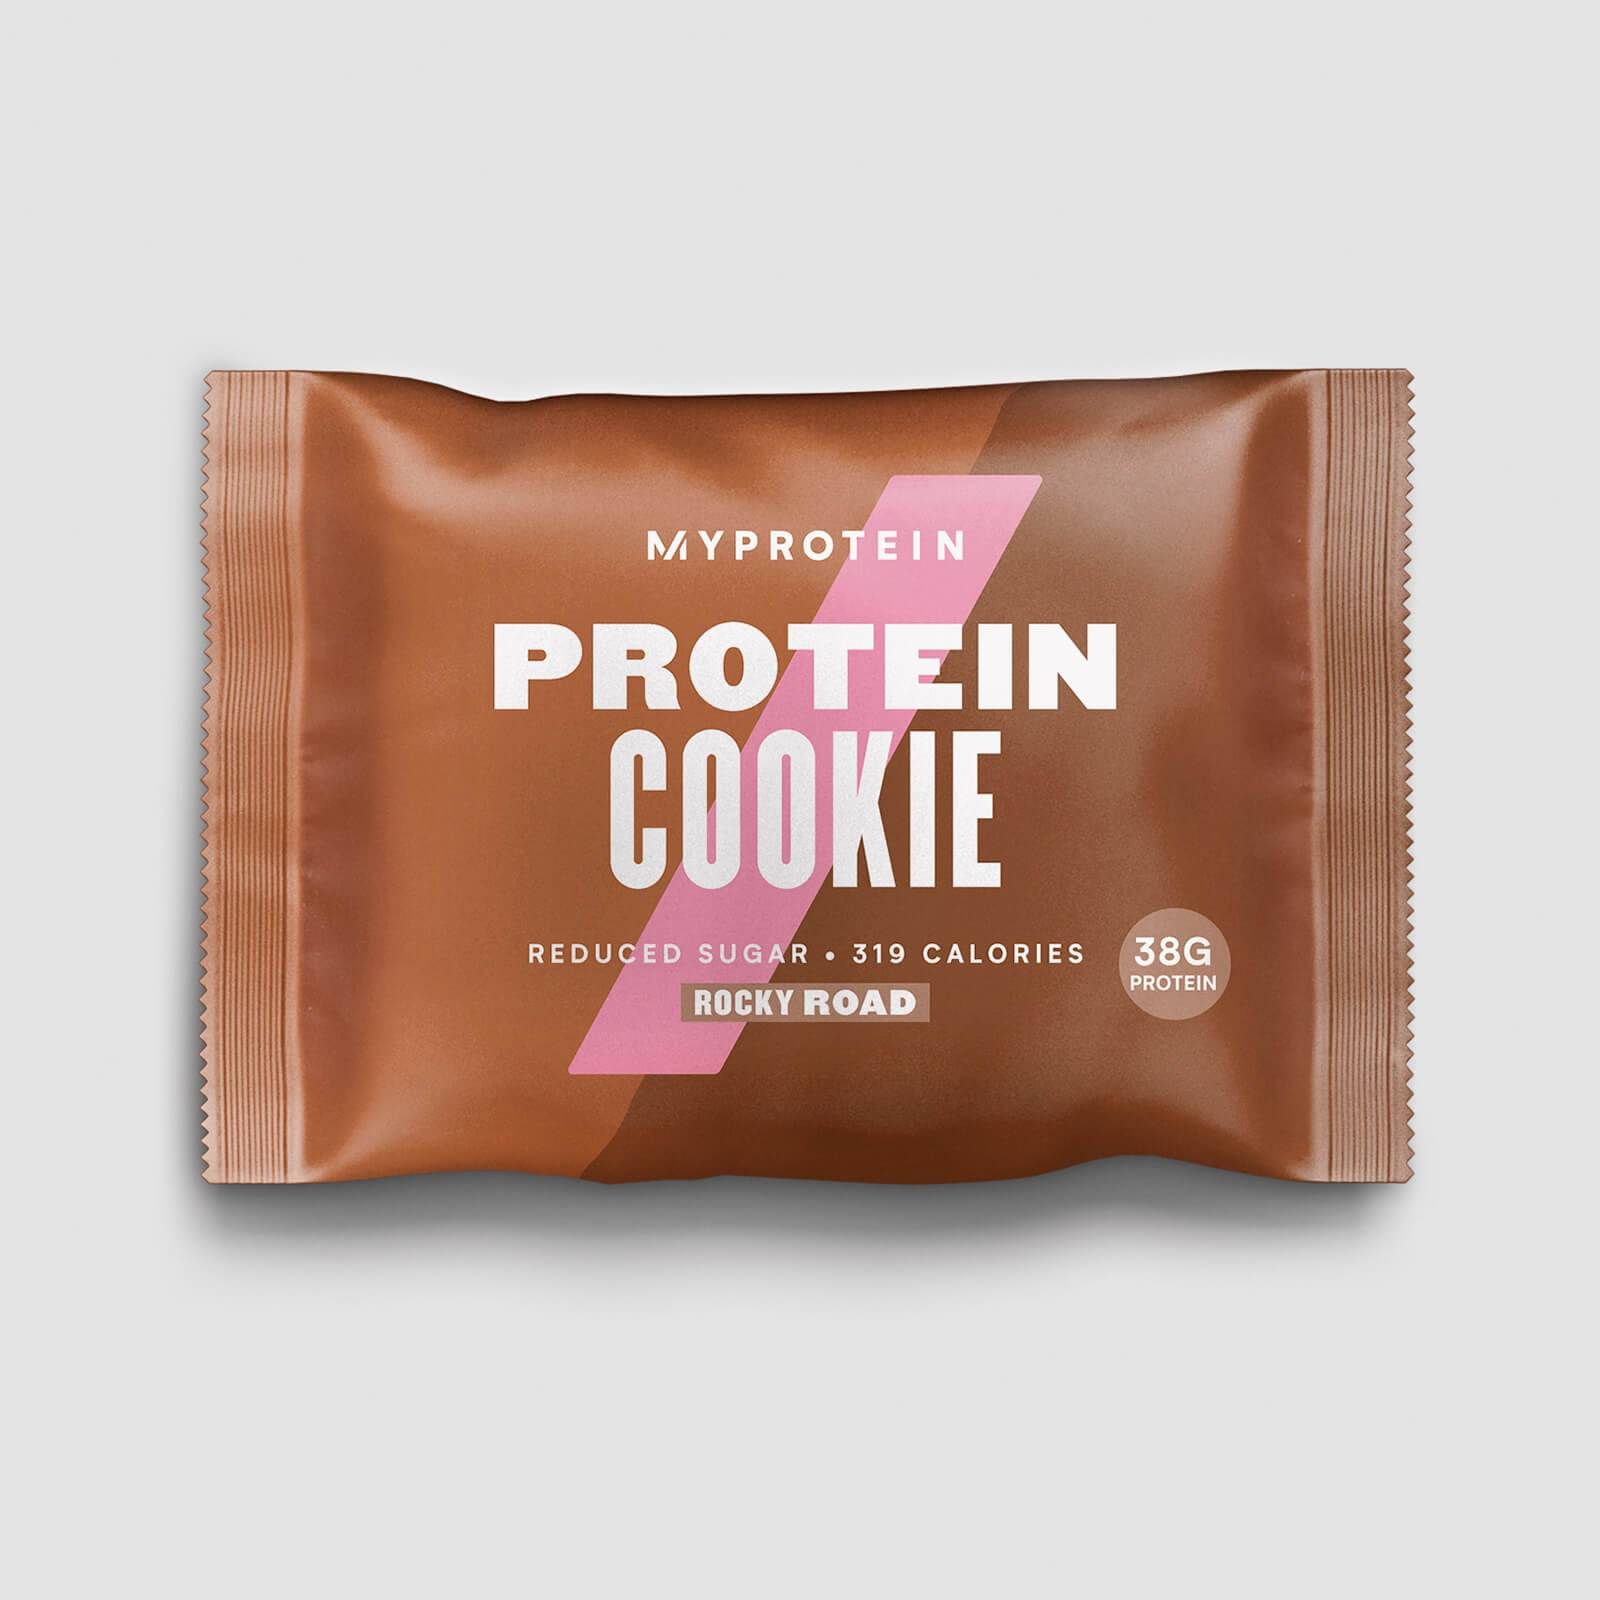 Myprotein Protein Cookie - Ny - Rocky Road